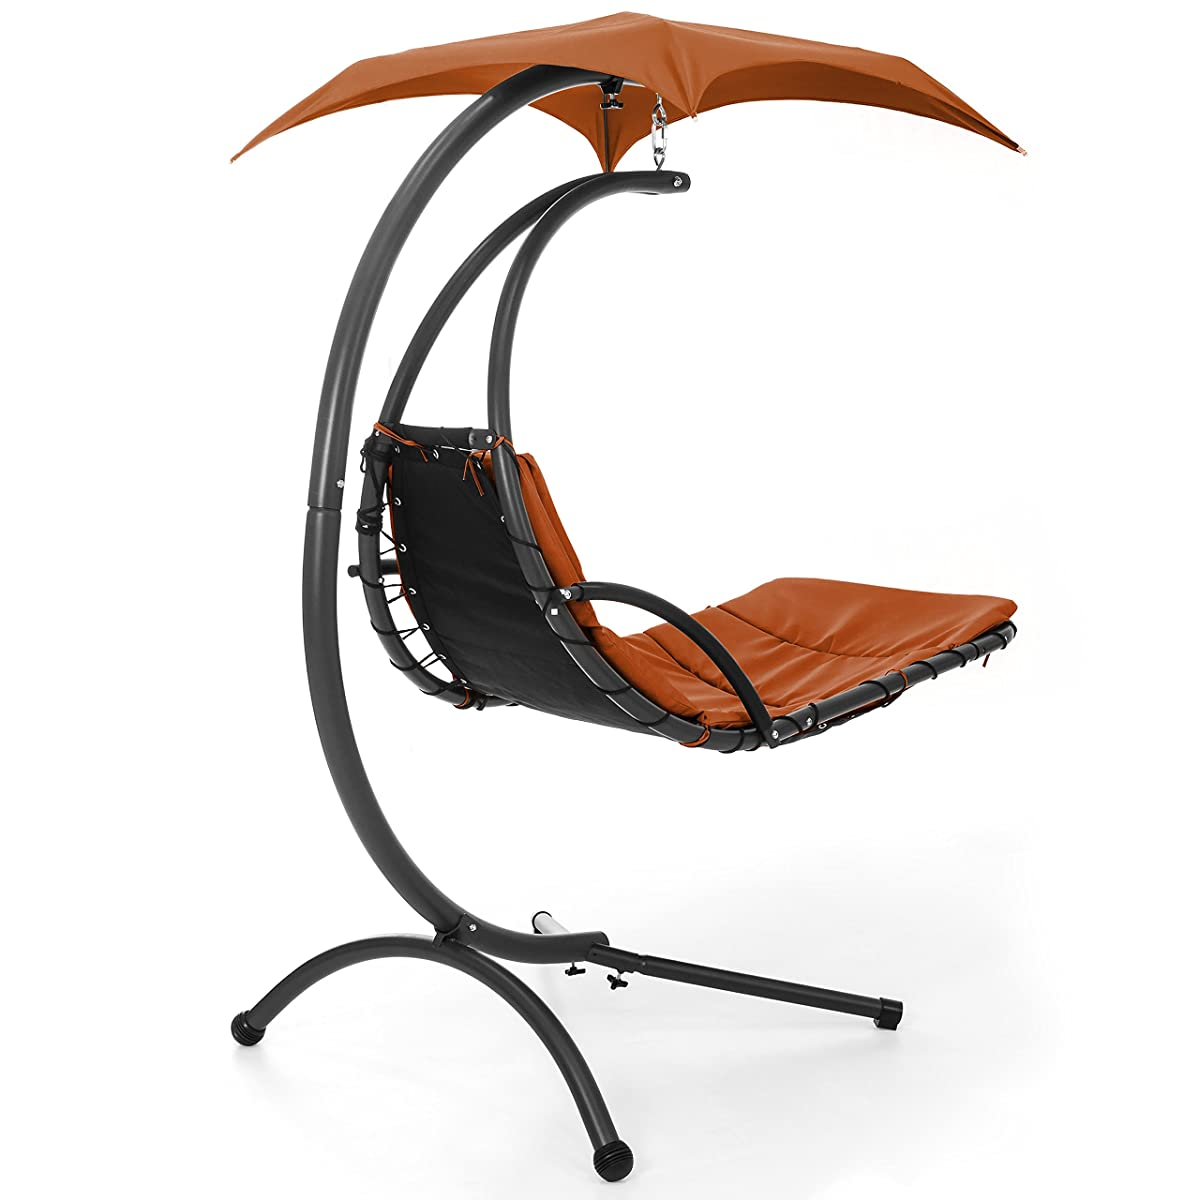 Best Choice Products Hanging Chaise Lounger 